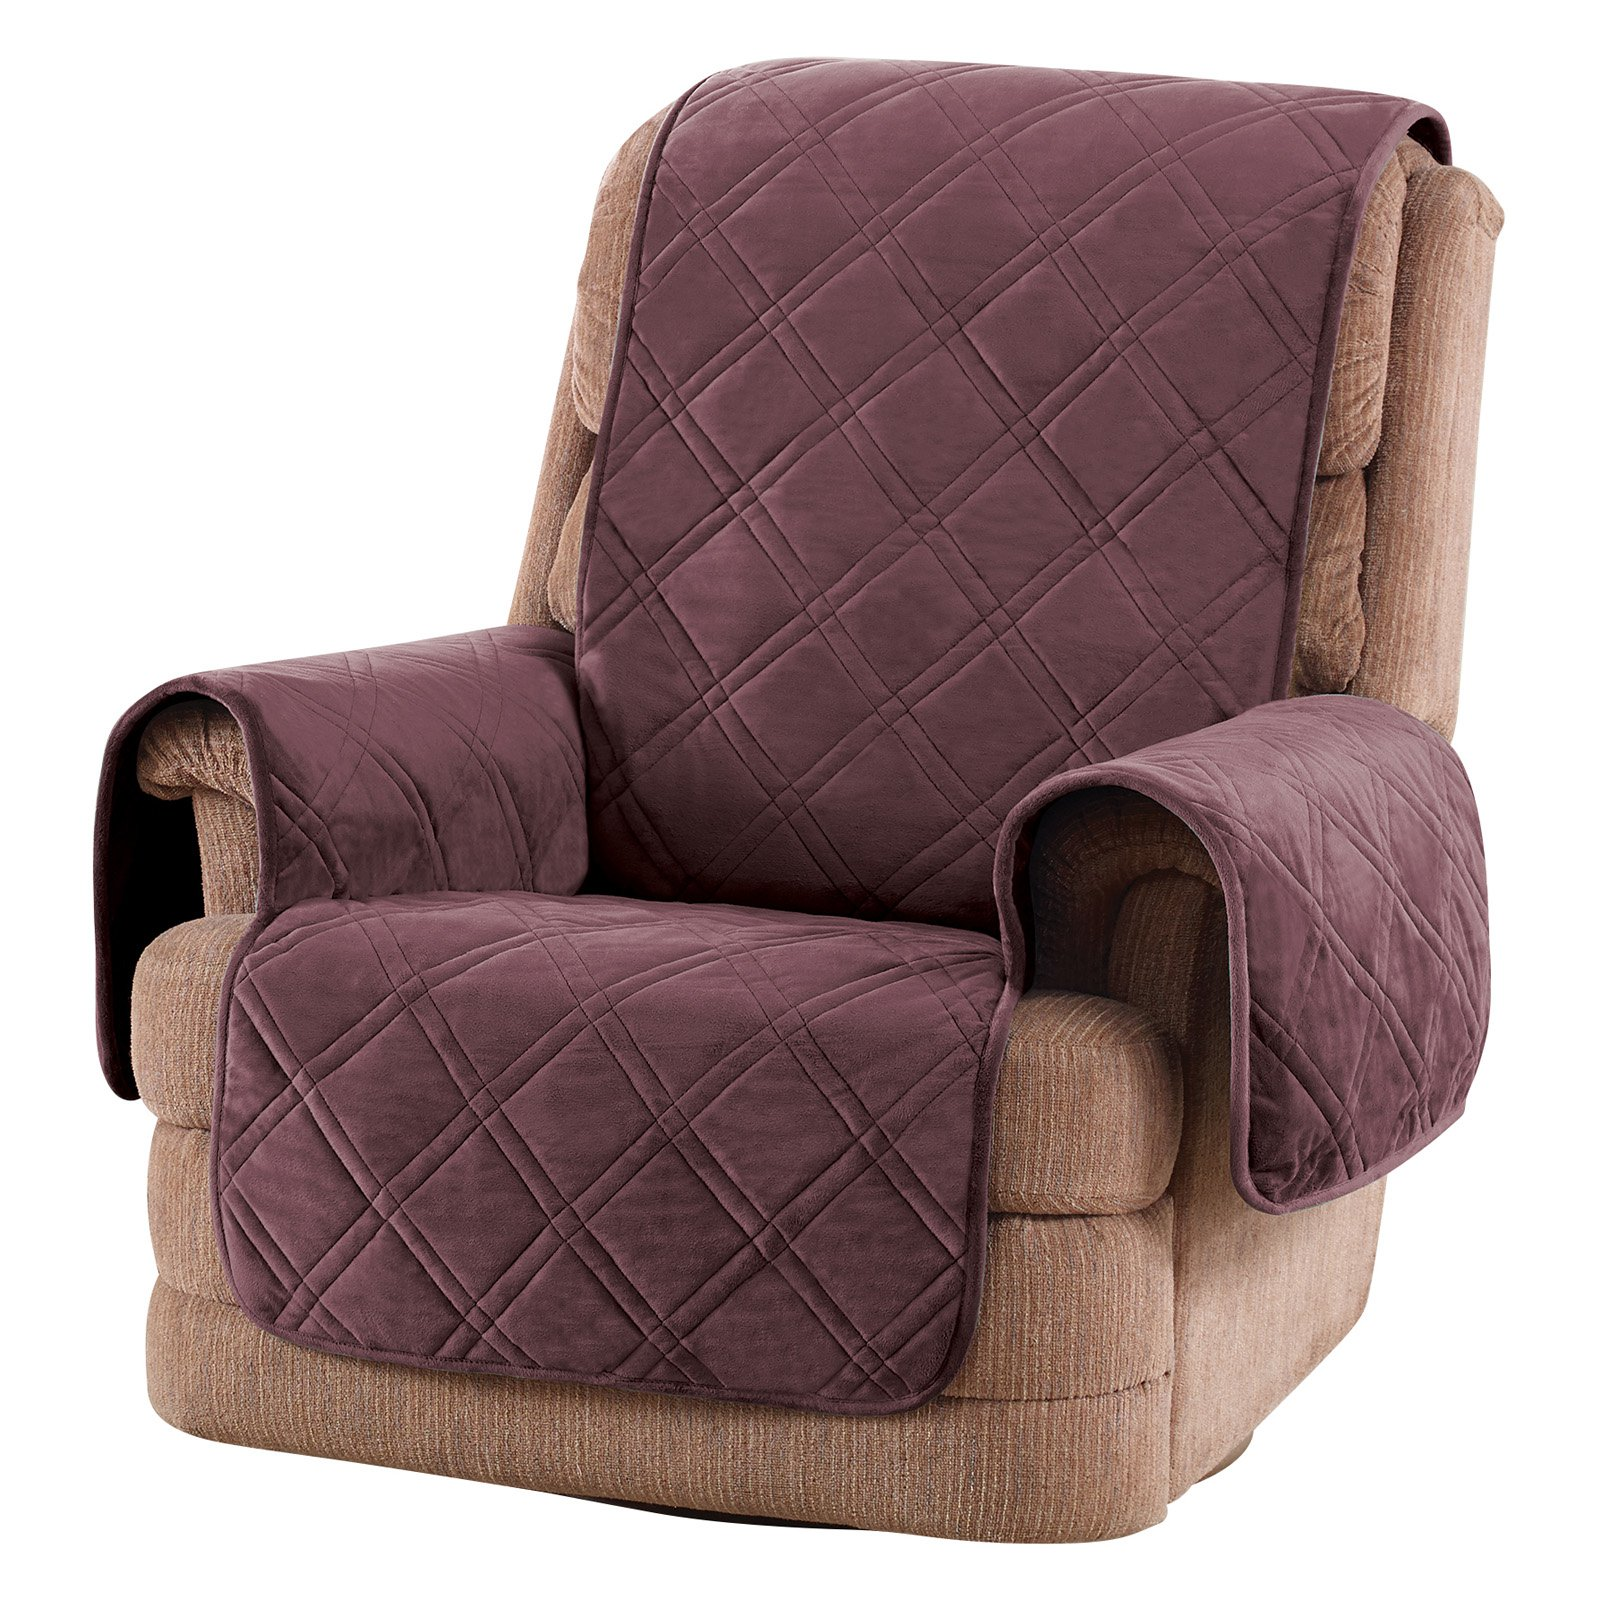 Sure Fit Triple Protection Recliner Protector Mulberry Recliner Cover Recliner Slipcover Furniture Protectors